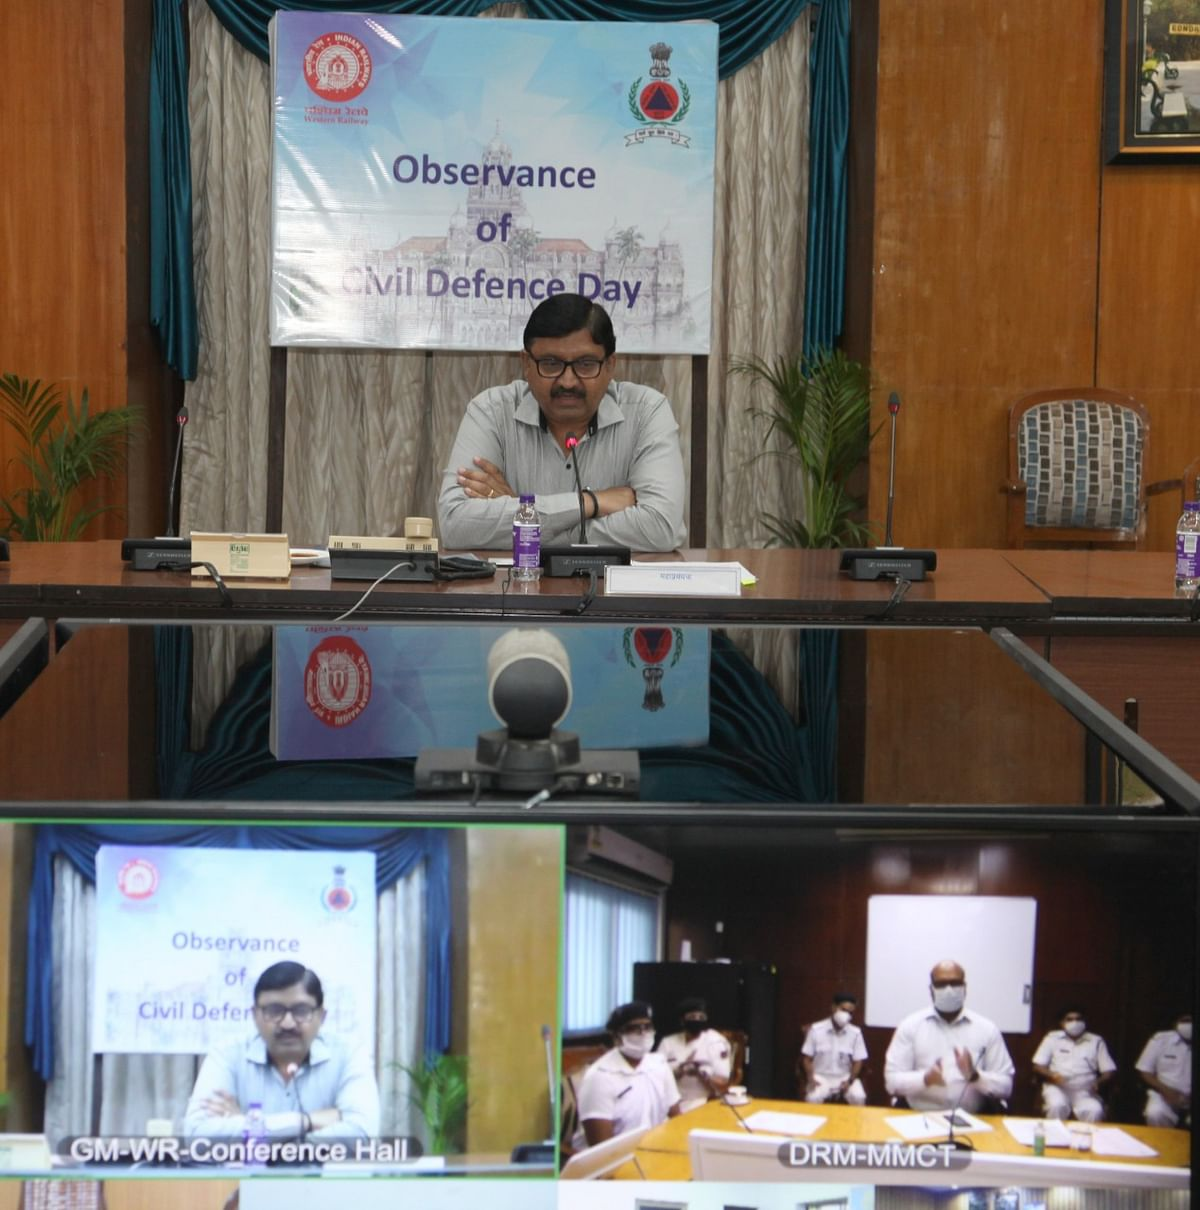 Western Railway observes Civil Defence Day with re-iteration of commitment to serve nation & society